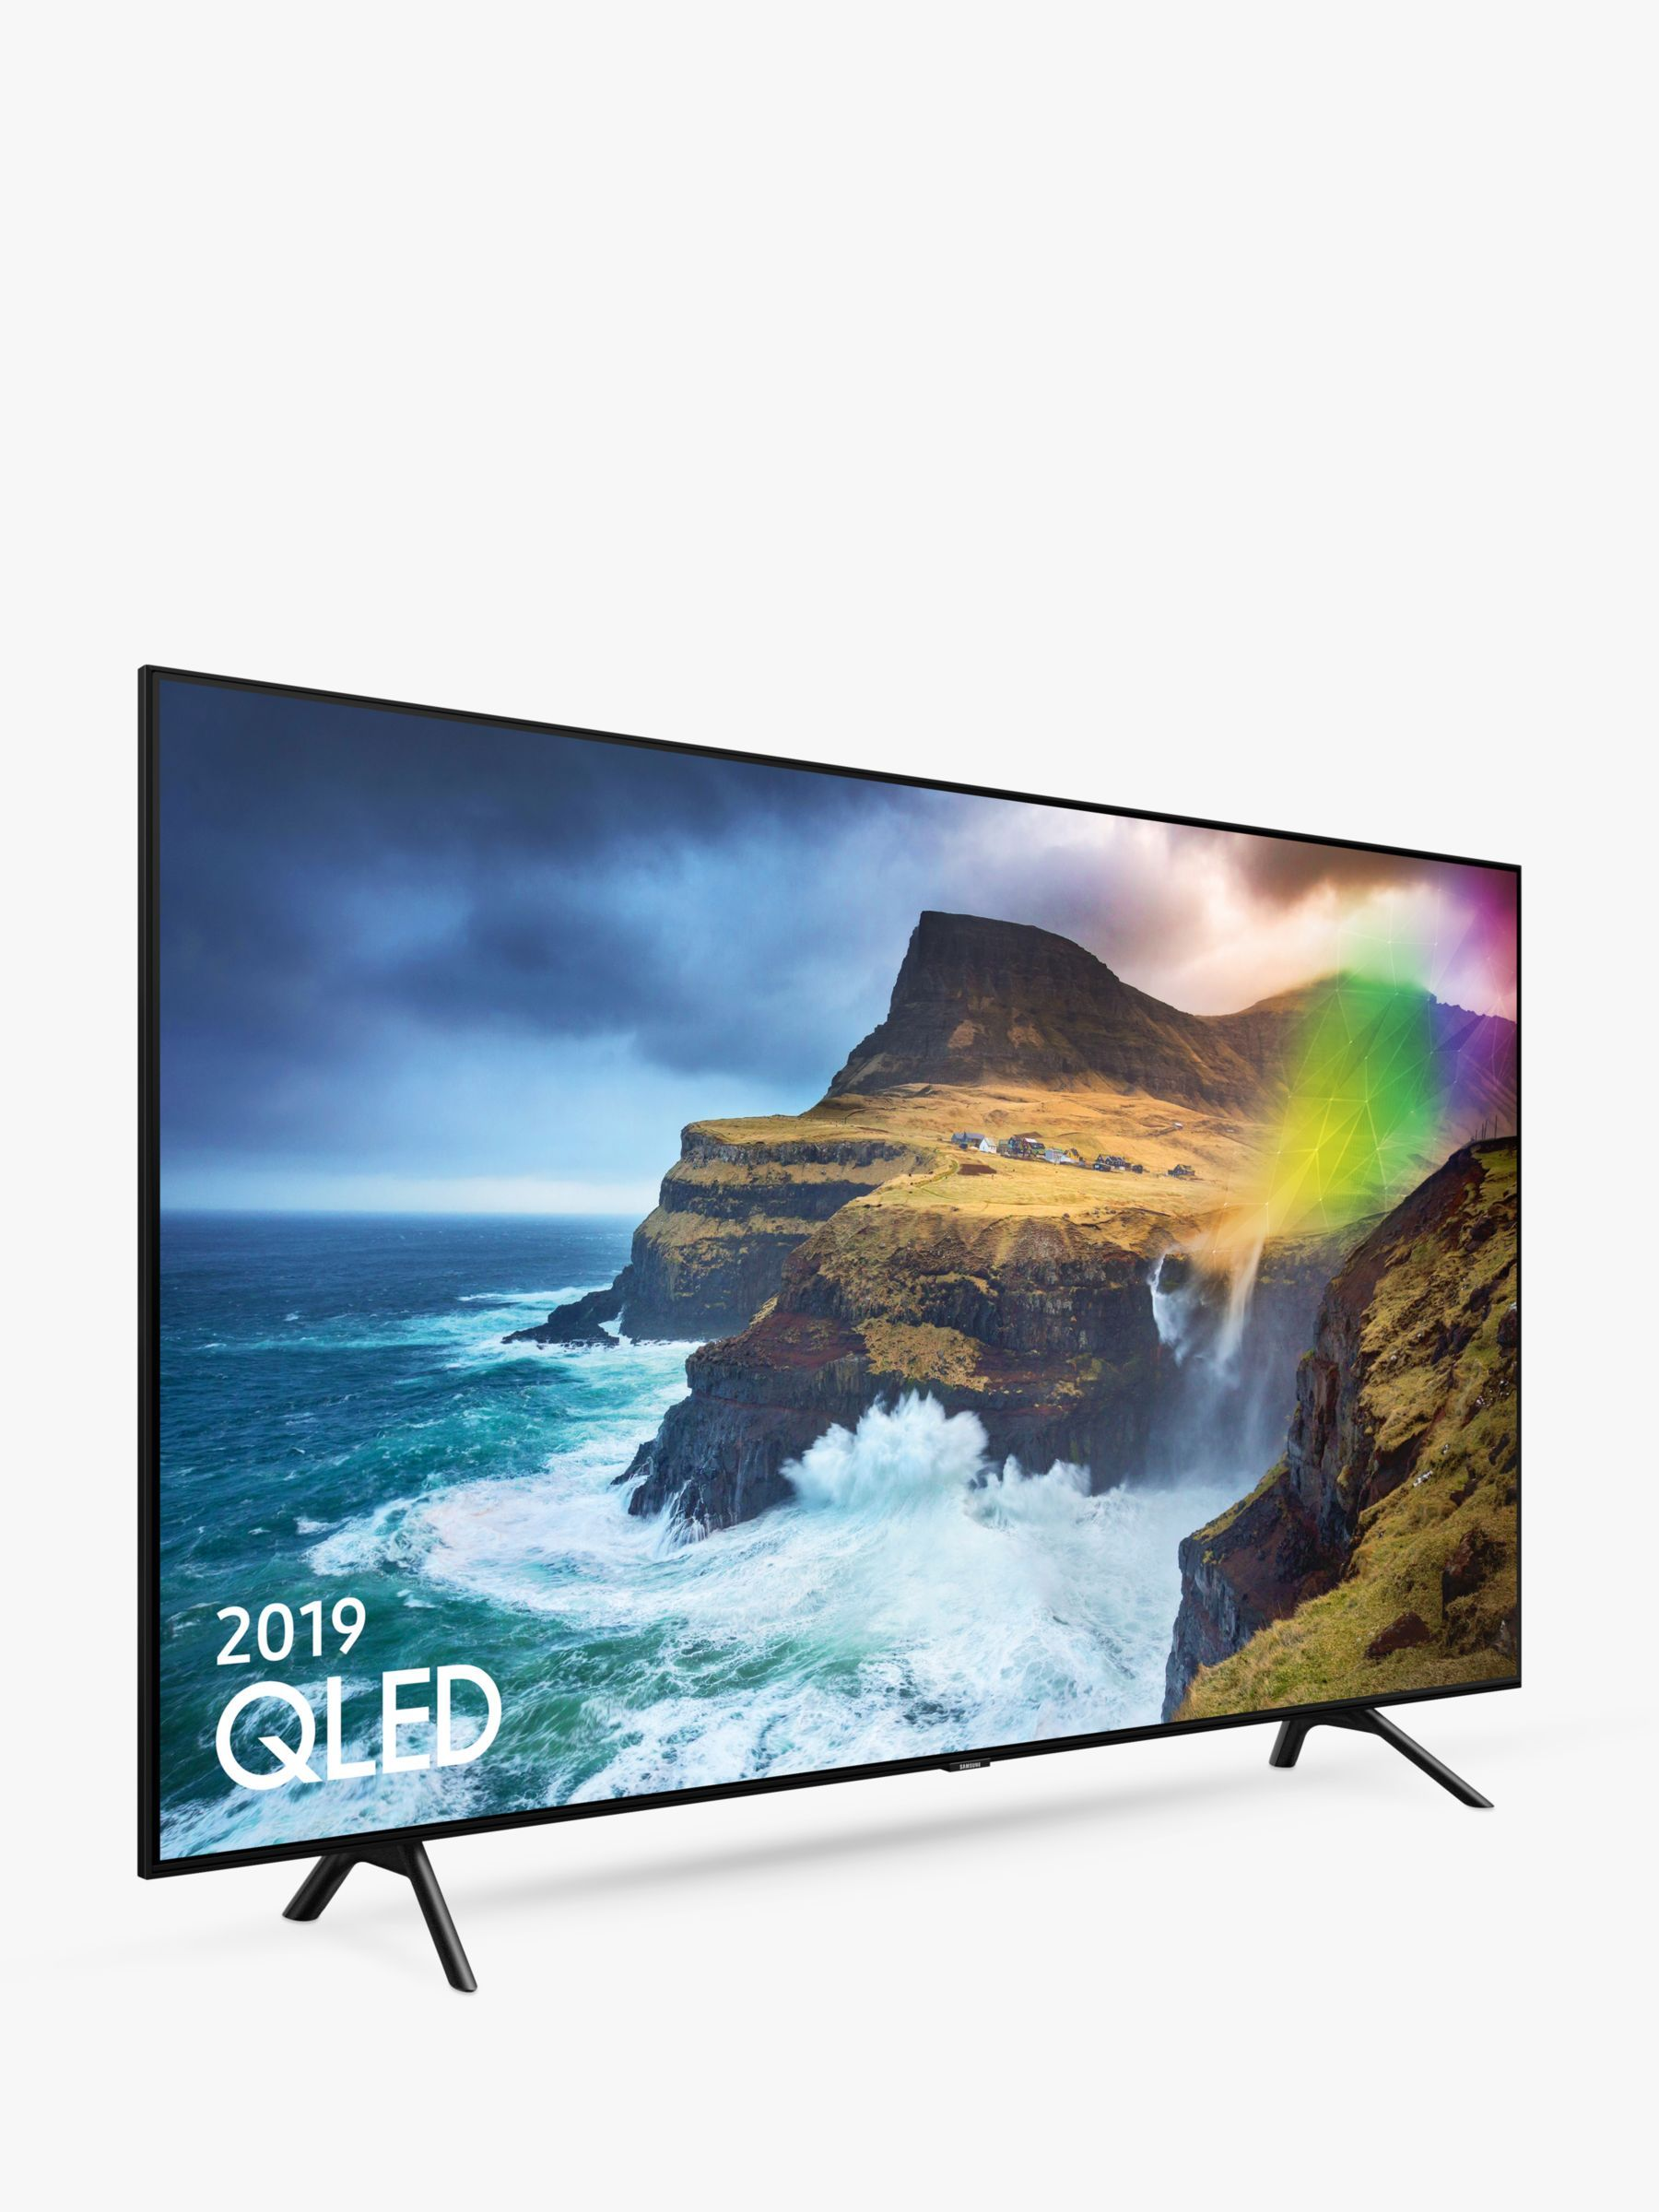 Samsung QE65Q70R (2019) QLED HDR 1000 4K Ultra HD Smart TV